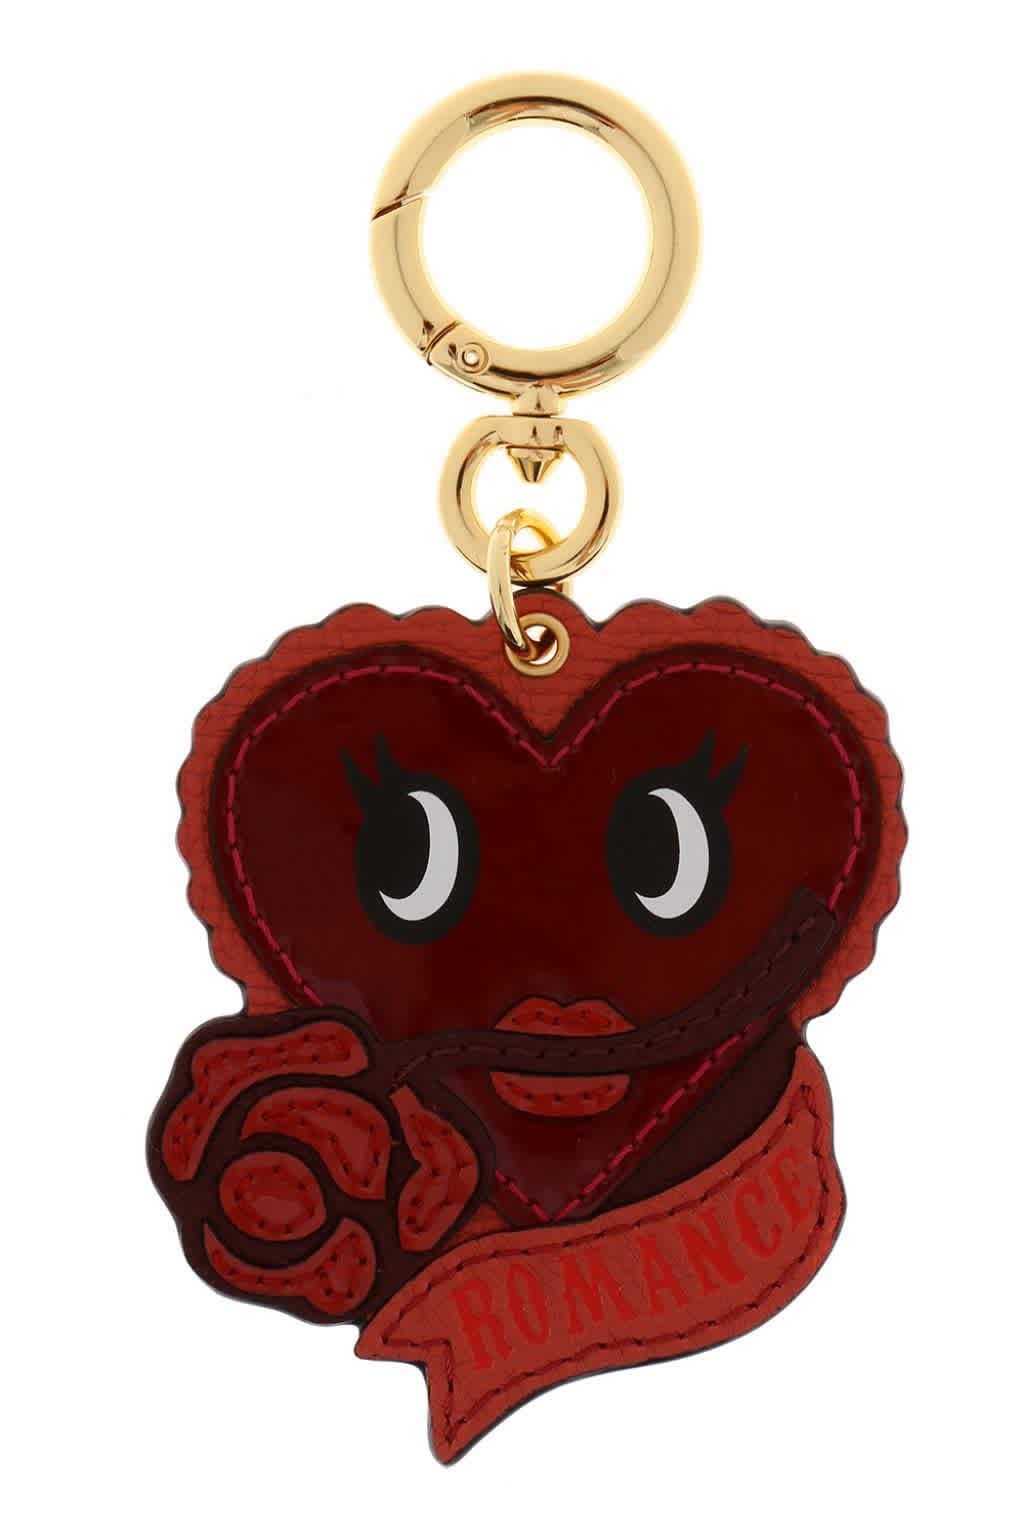 Burberry Red Romance Leather Charm